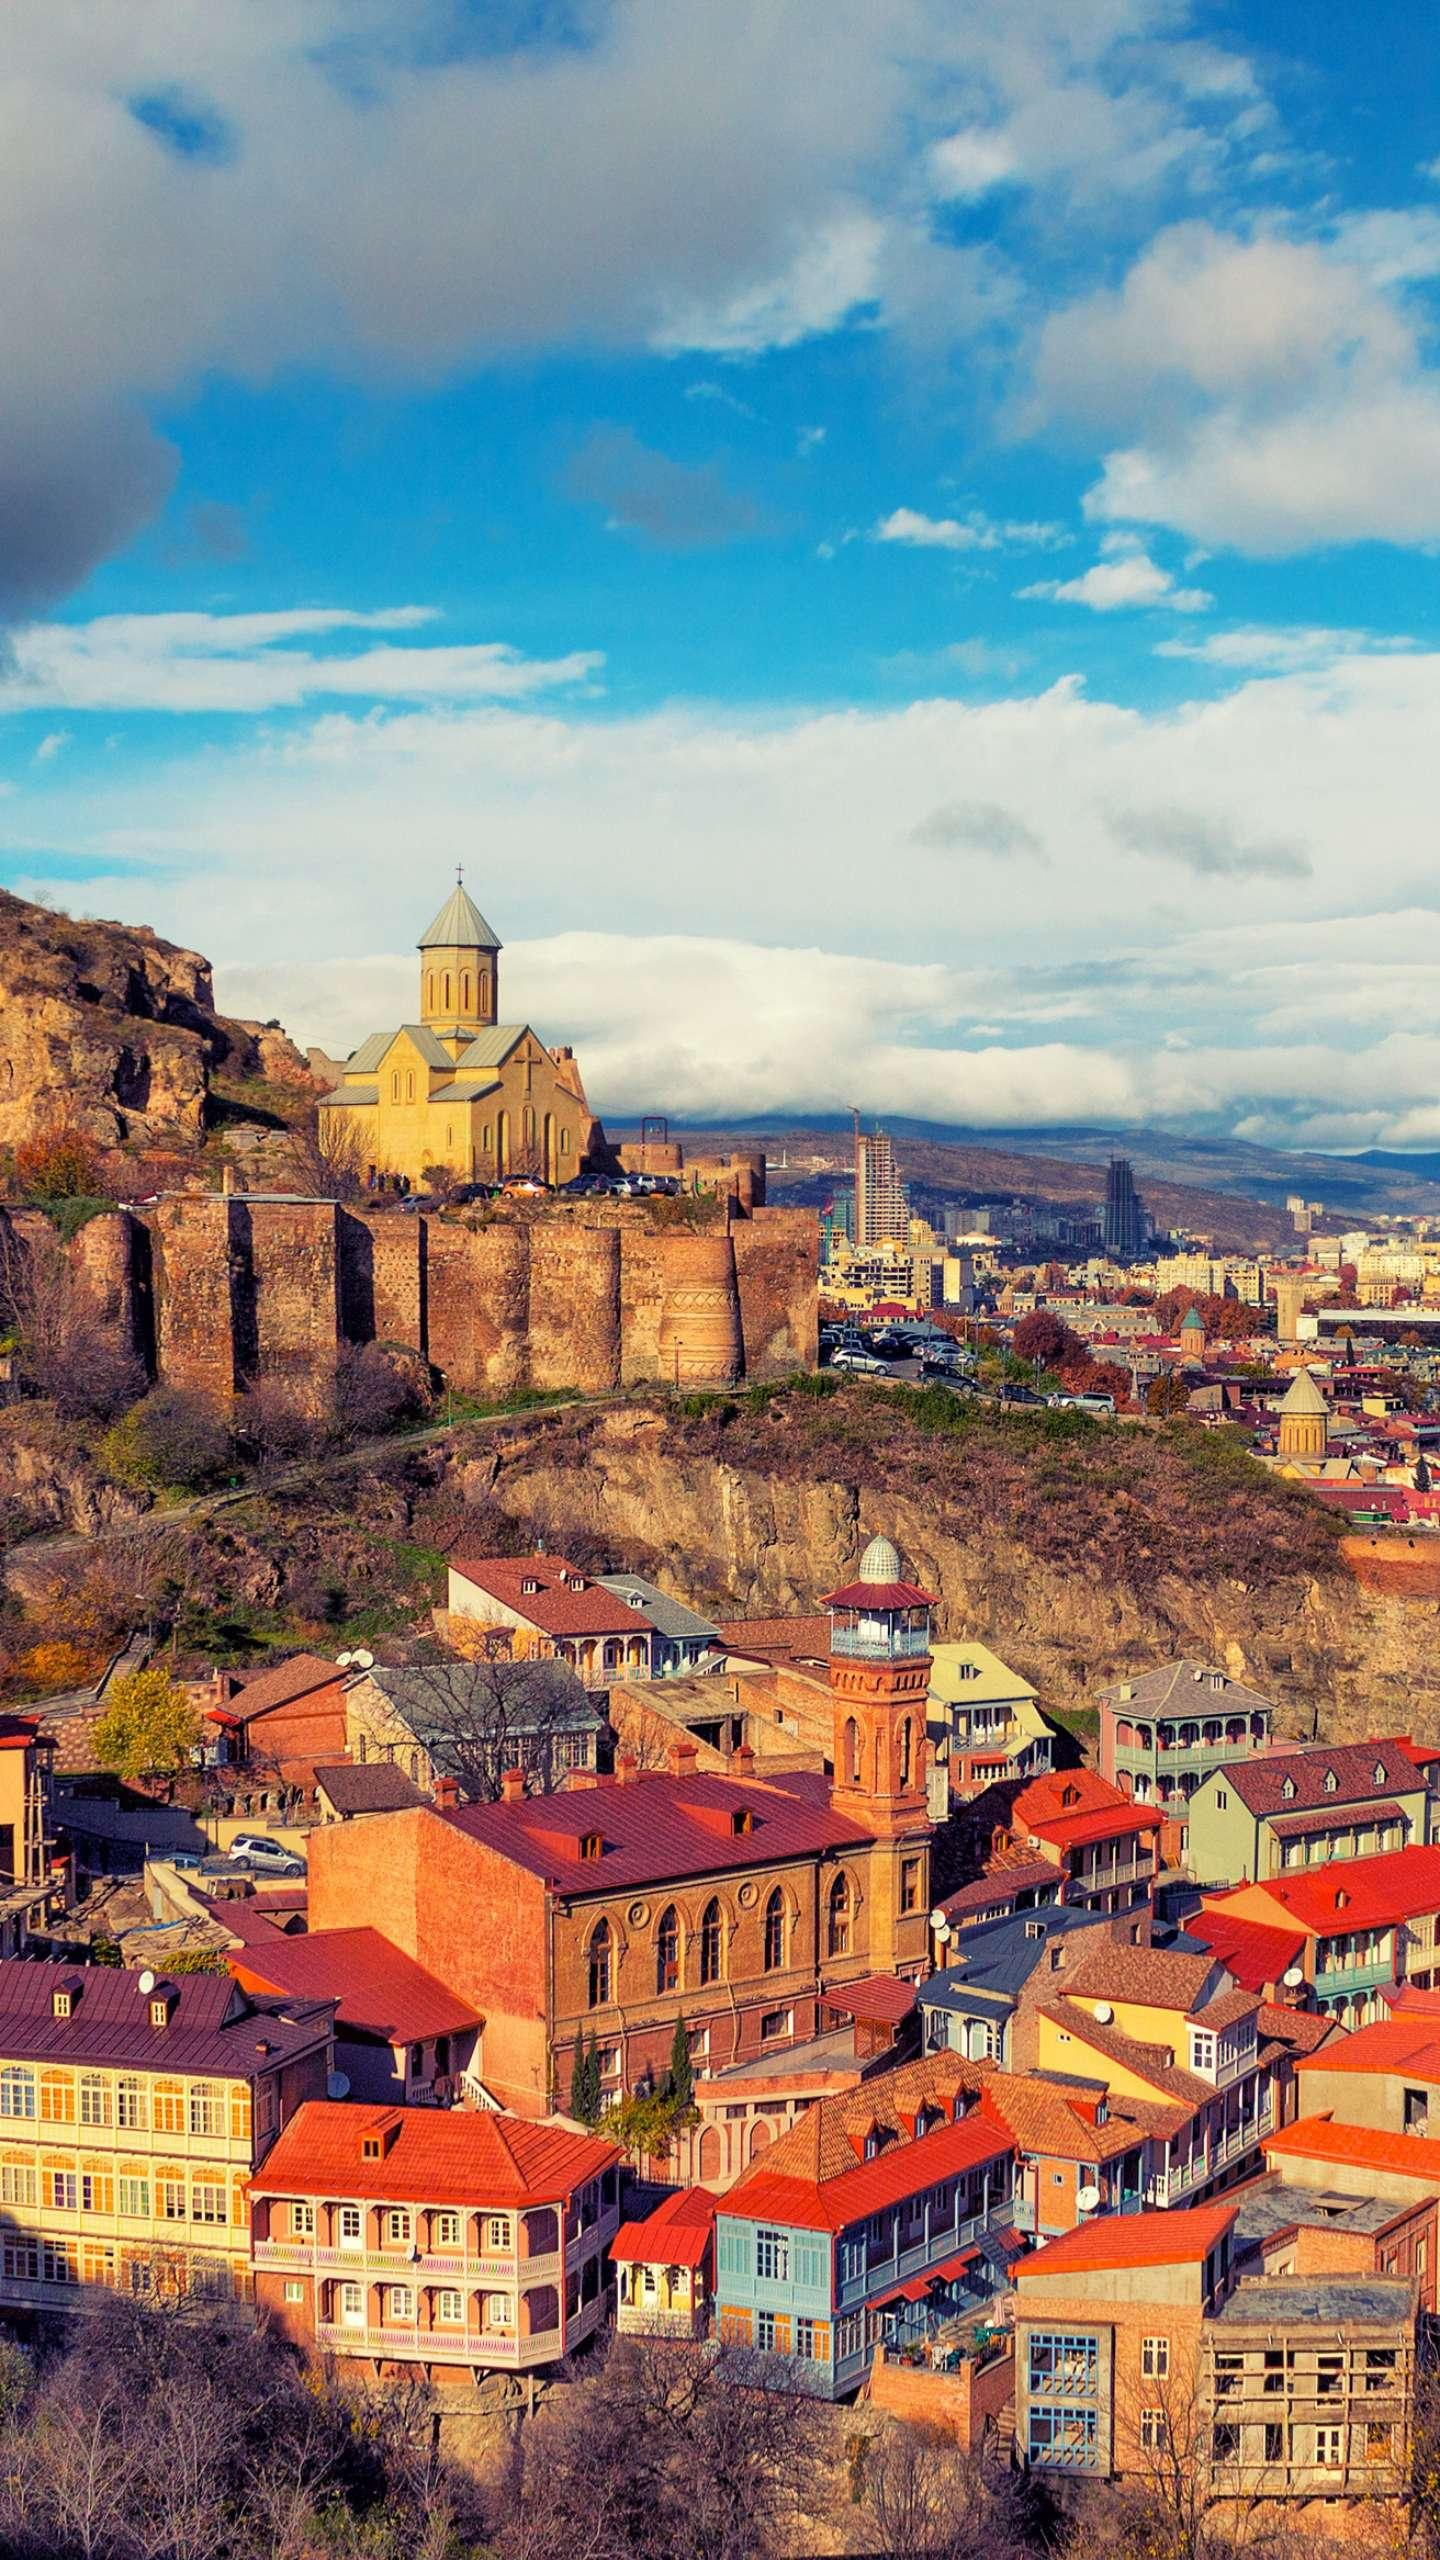 Tbilisi. There is probably no city in the world like Tbilisi. It is like a red wine with sunshine. It is very fascinating.